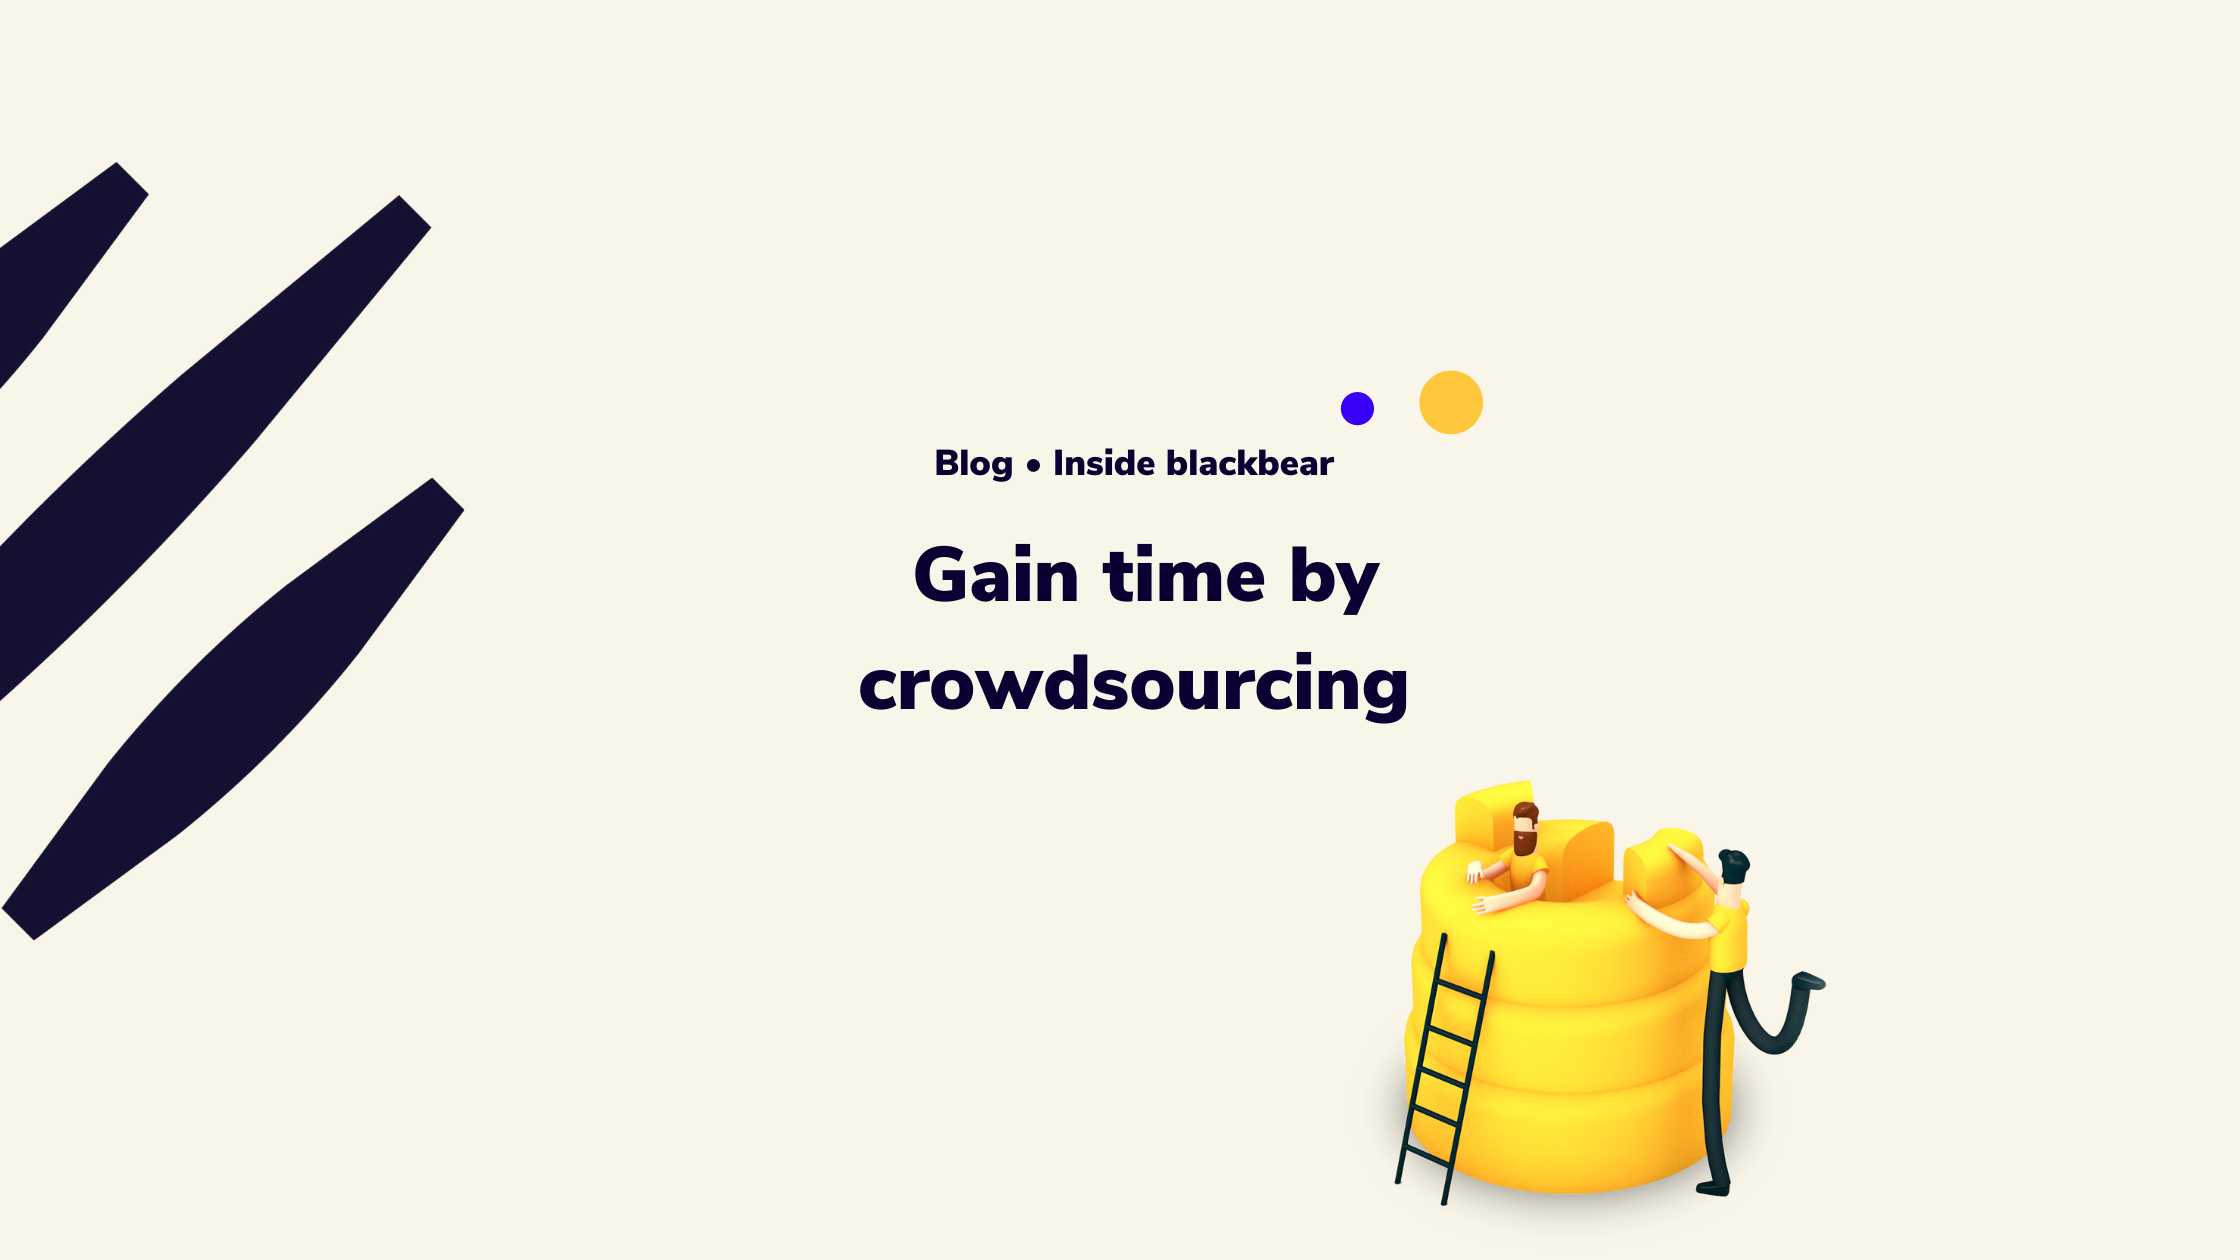 The benefit of crowdsourcing